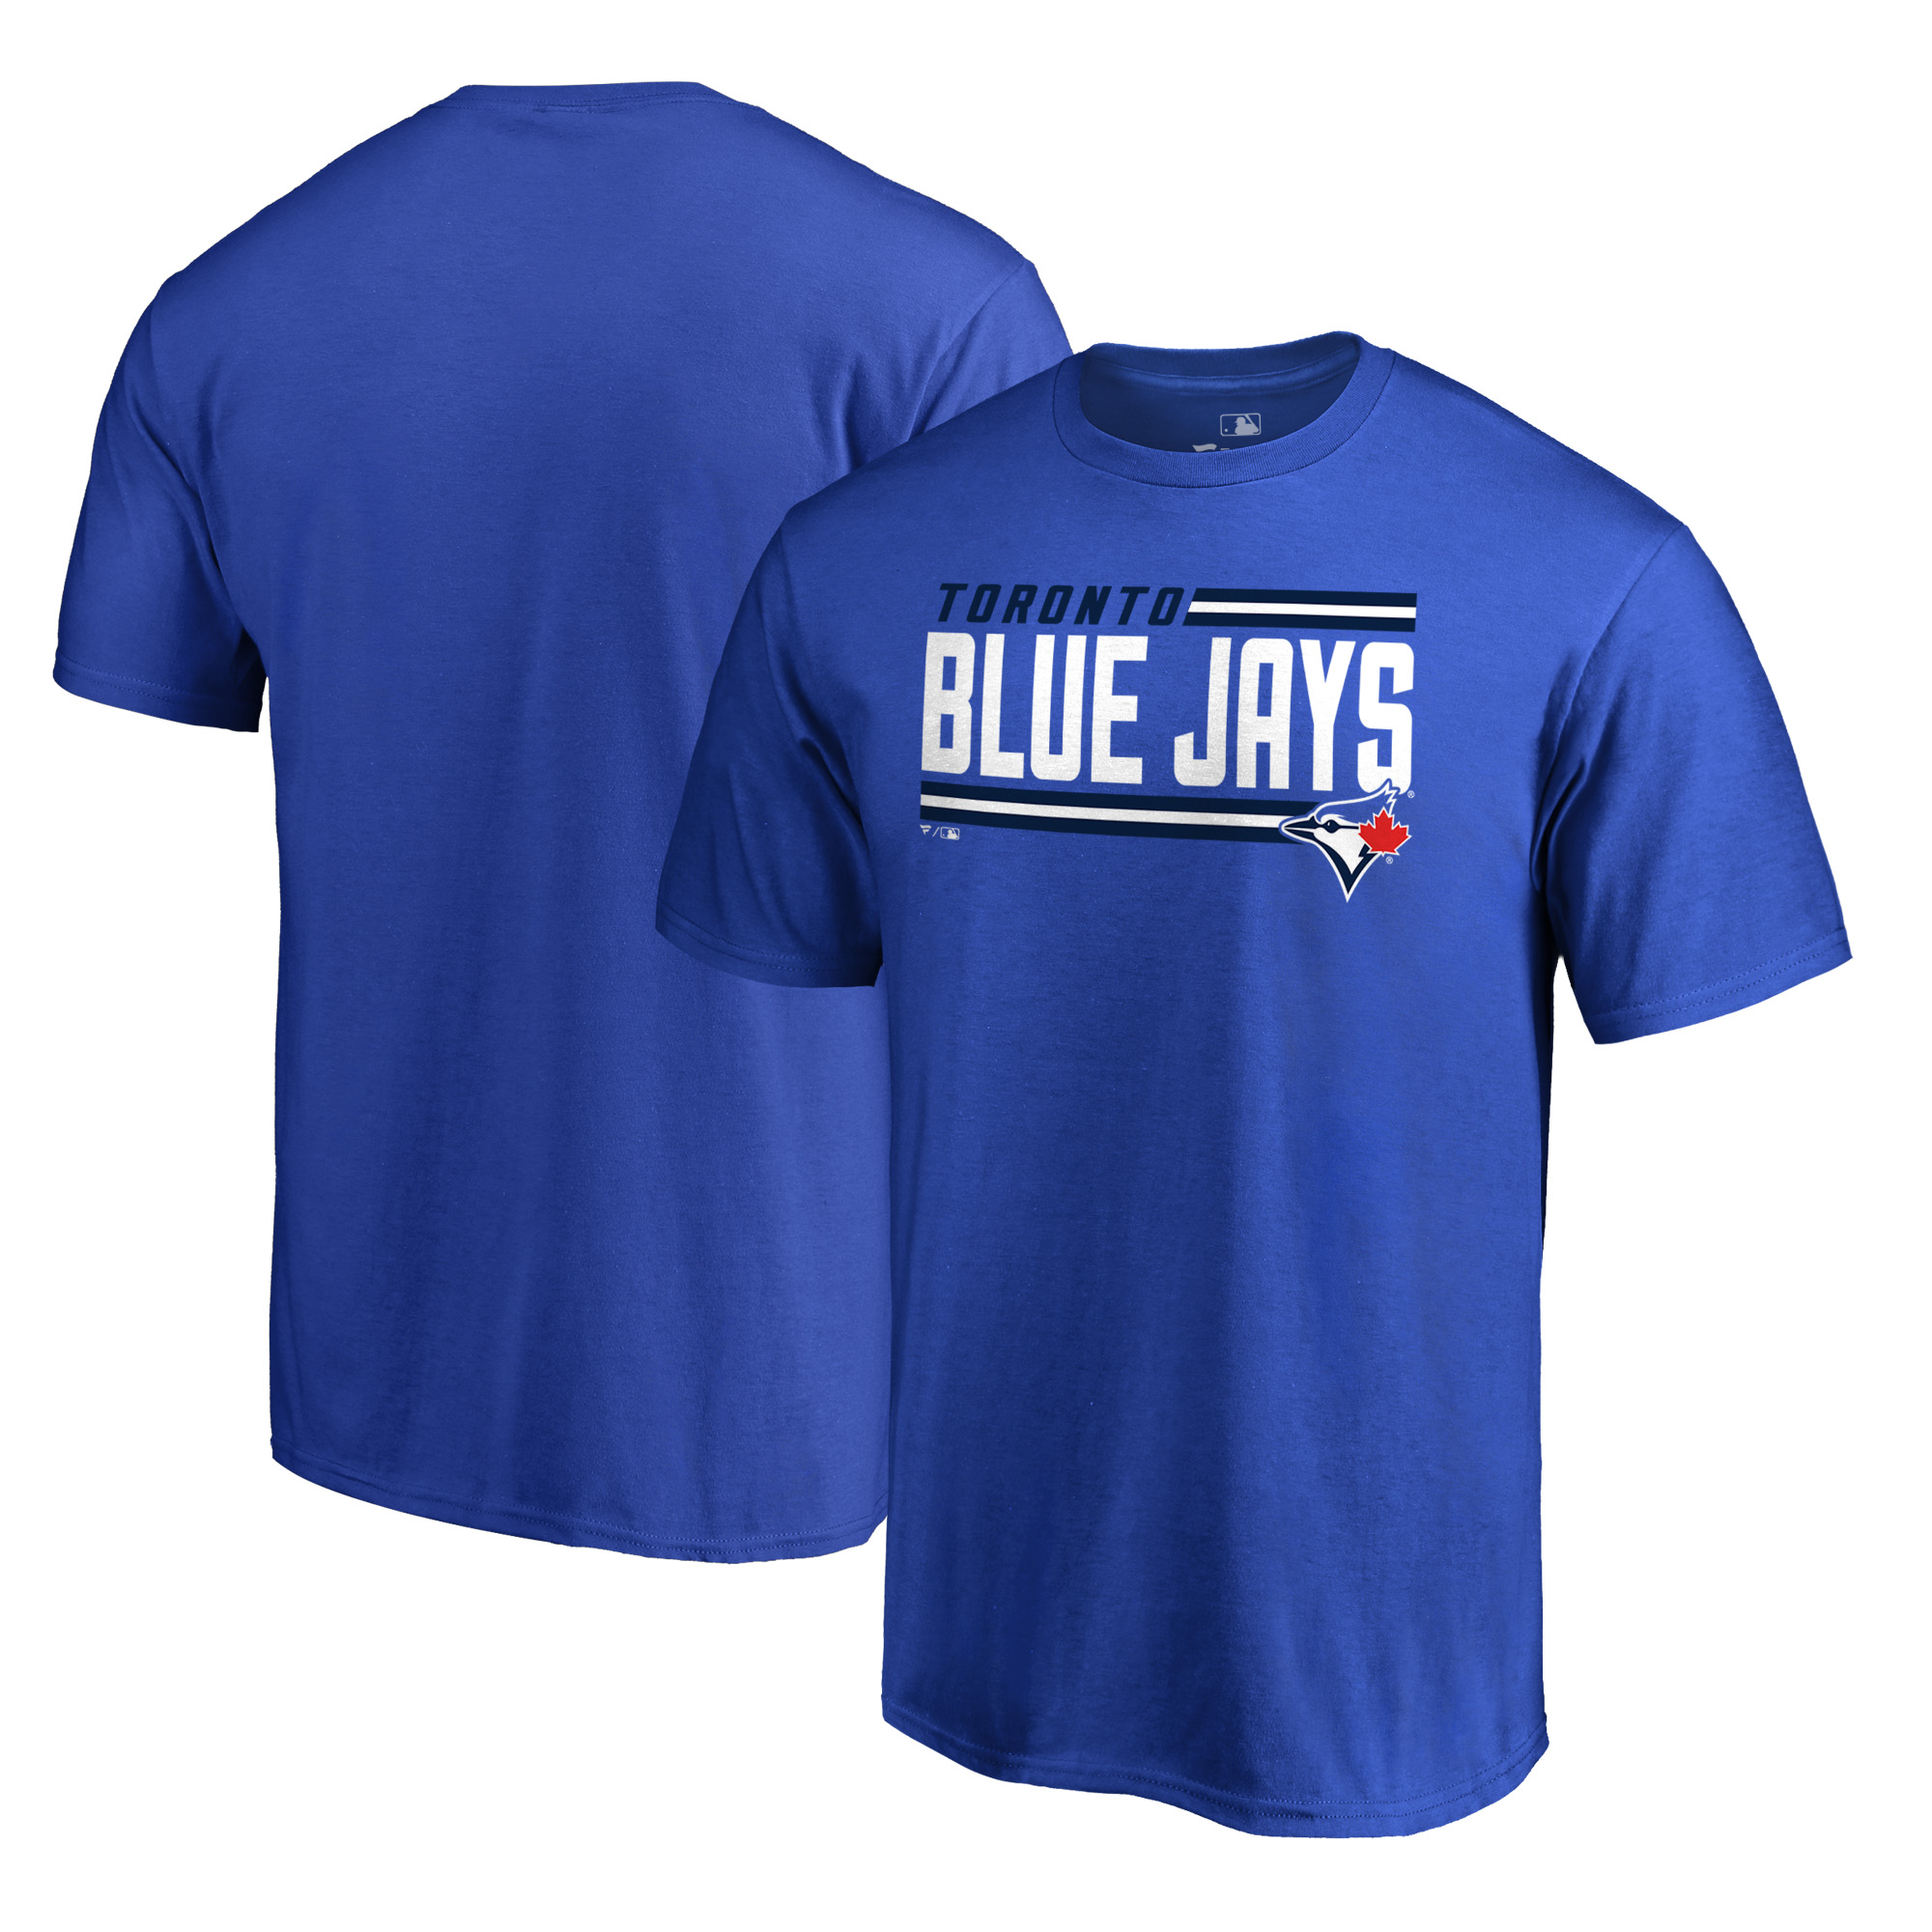 Toronto Blue Jays Fanatics Branded Onside Stripe T-Shirt - Royal